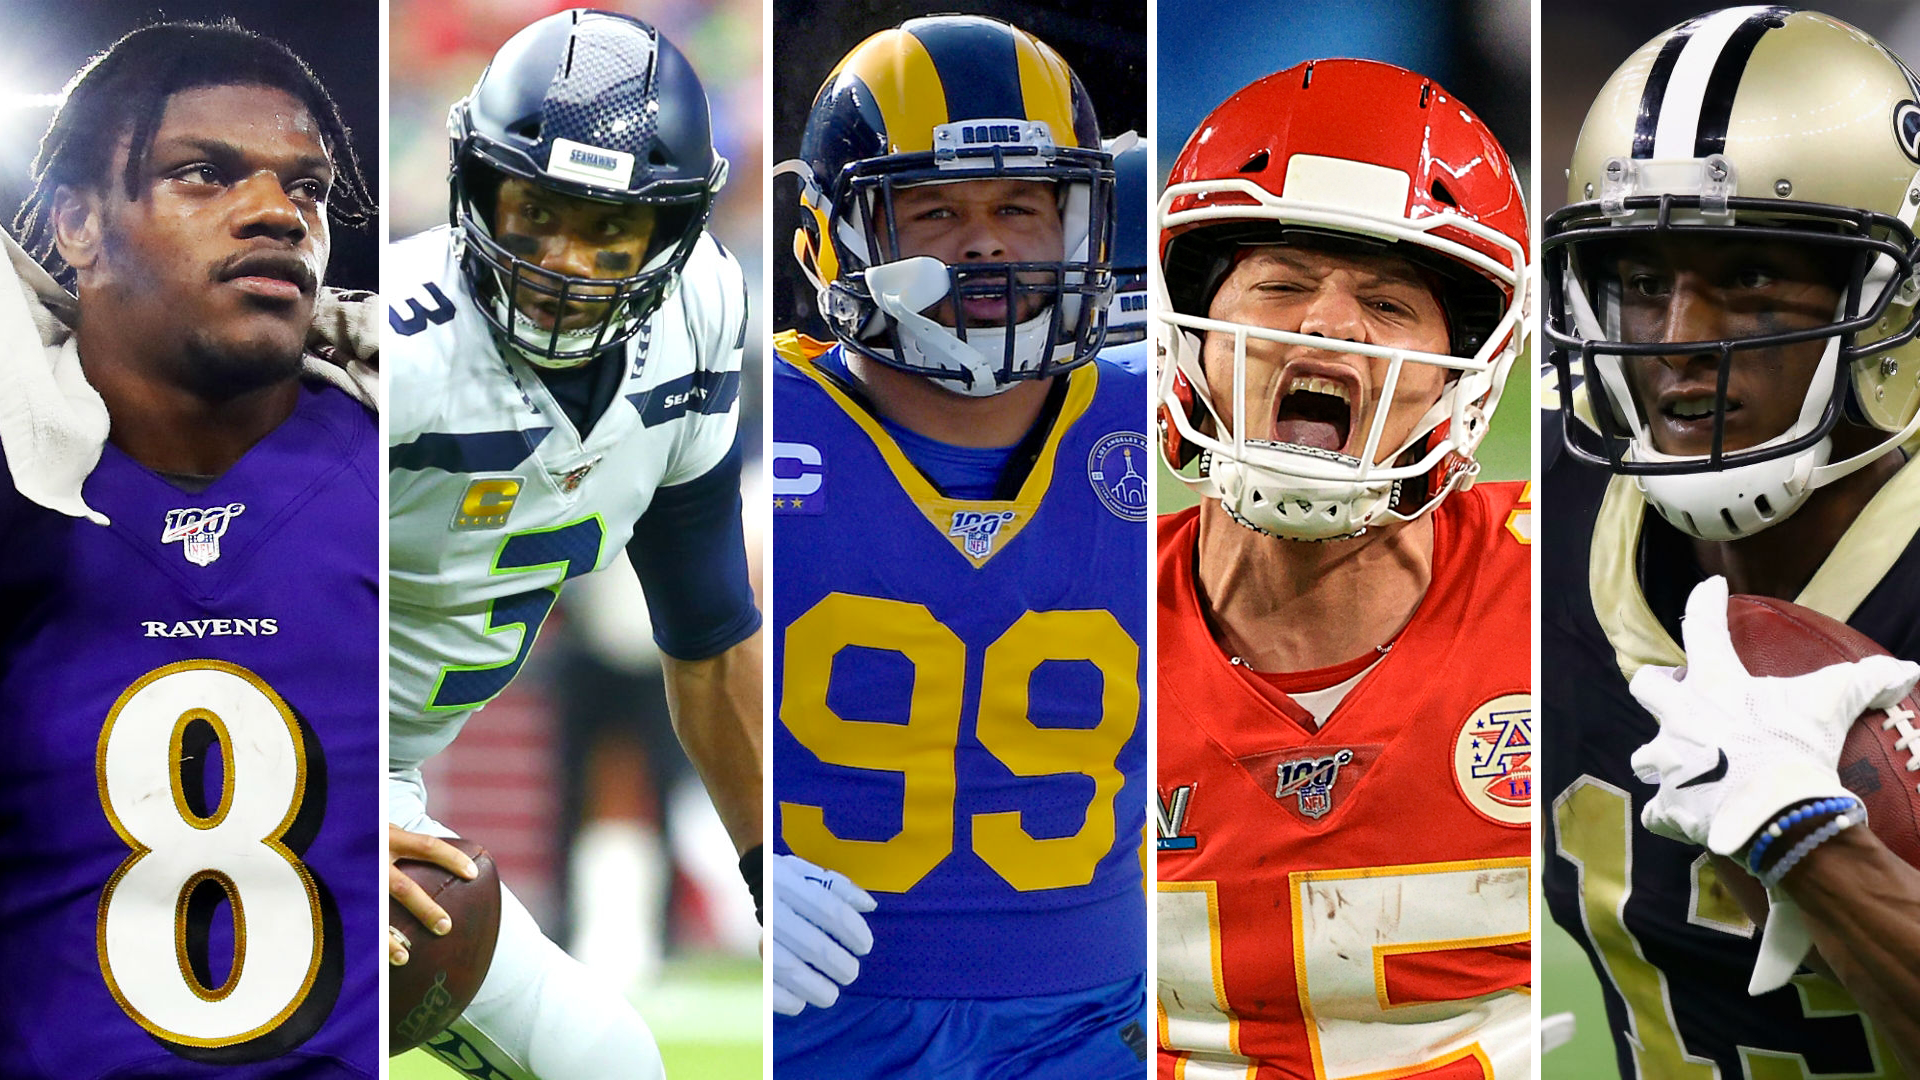 Full Nfl Top 100 List Here S Who Players Voted As The Best In The League Sporting News Cool pictures for profile cool profile picture ideas by gaikuo captain. full nfl top 100 list here s who